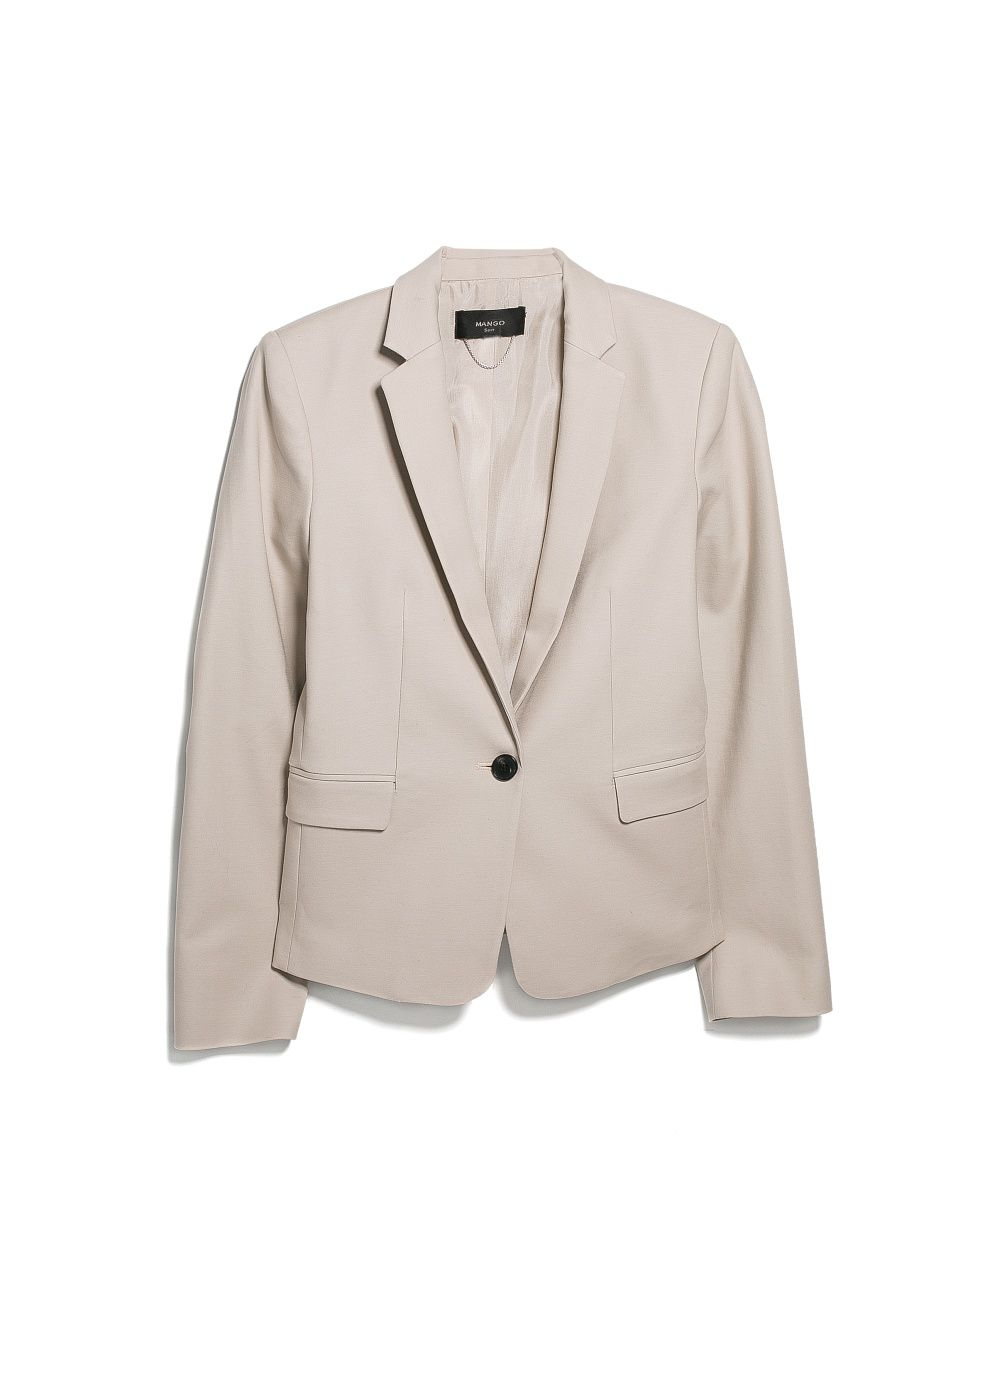 Essential cotton blend blazer